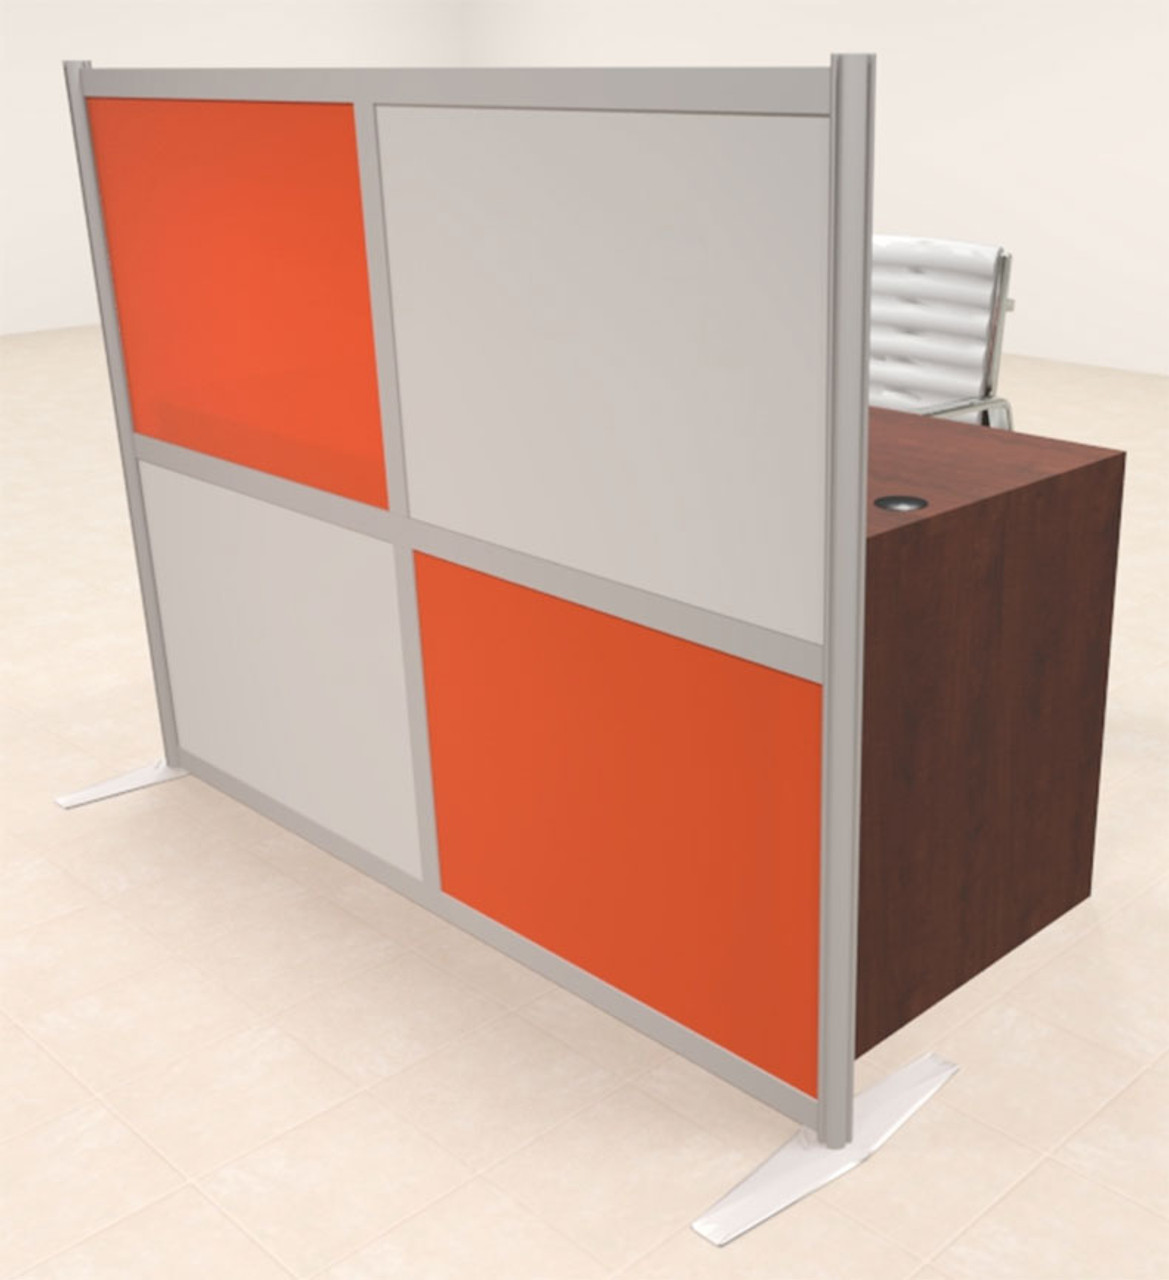 One Person Workstation w/Acrylic Aluminum Privacy Panel, #OT-SUL-HPO134